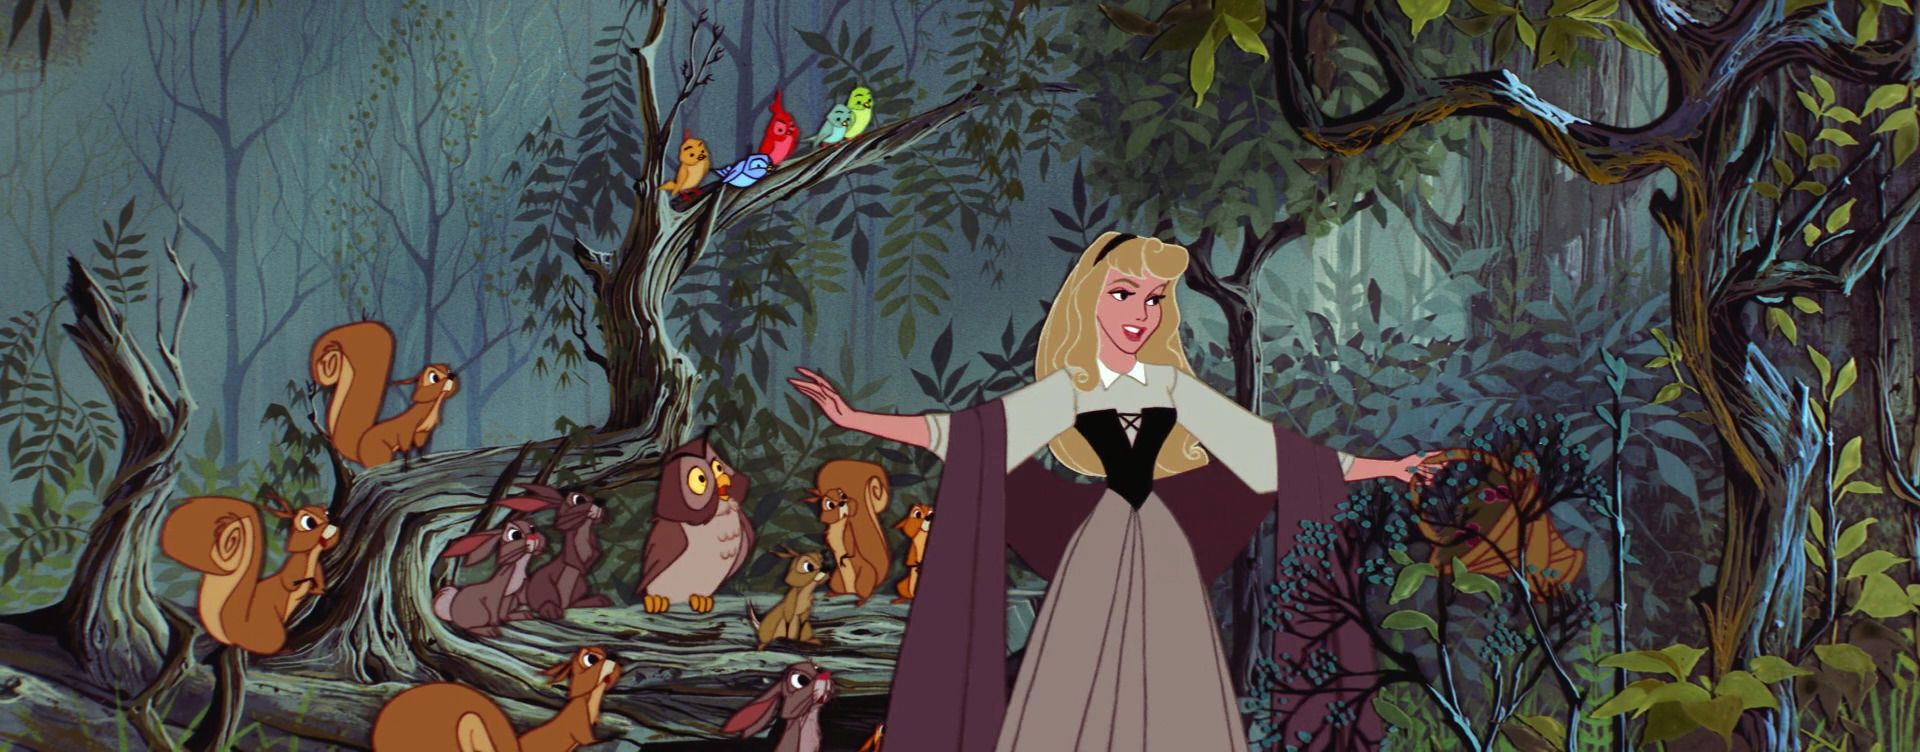 "Disney ""Sleeping Beauty"" 1959 Briar Rose with the animals in the forest"